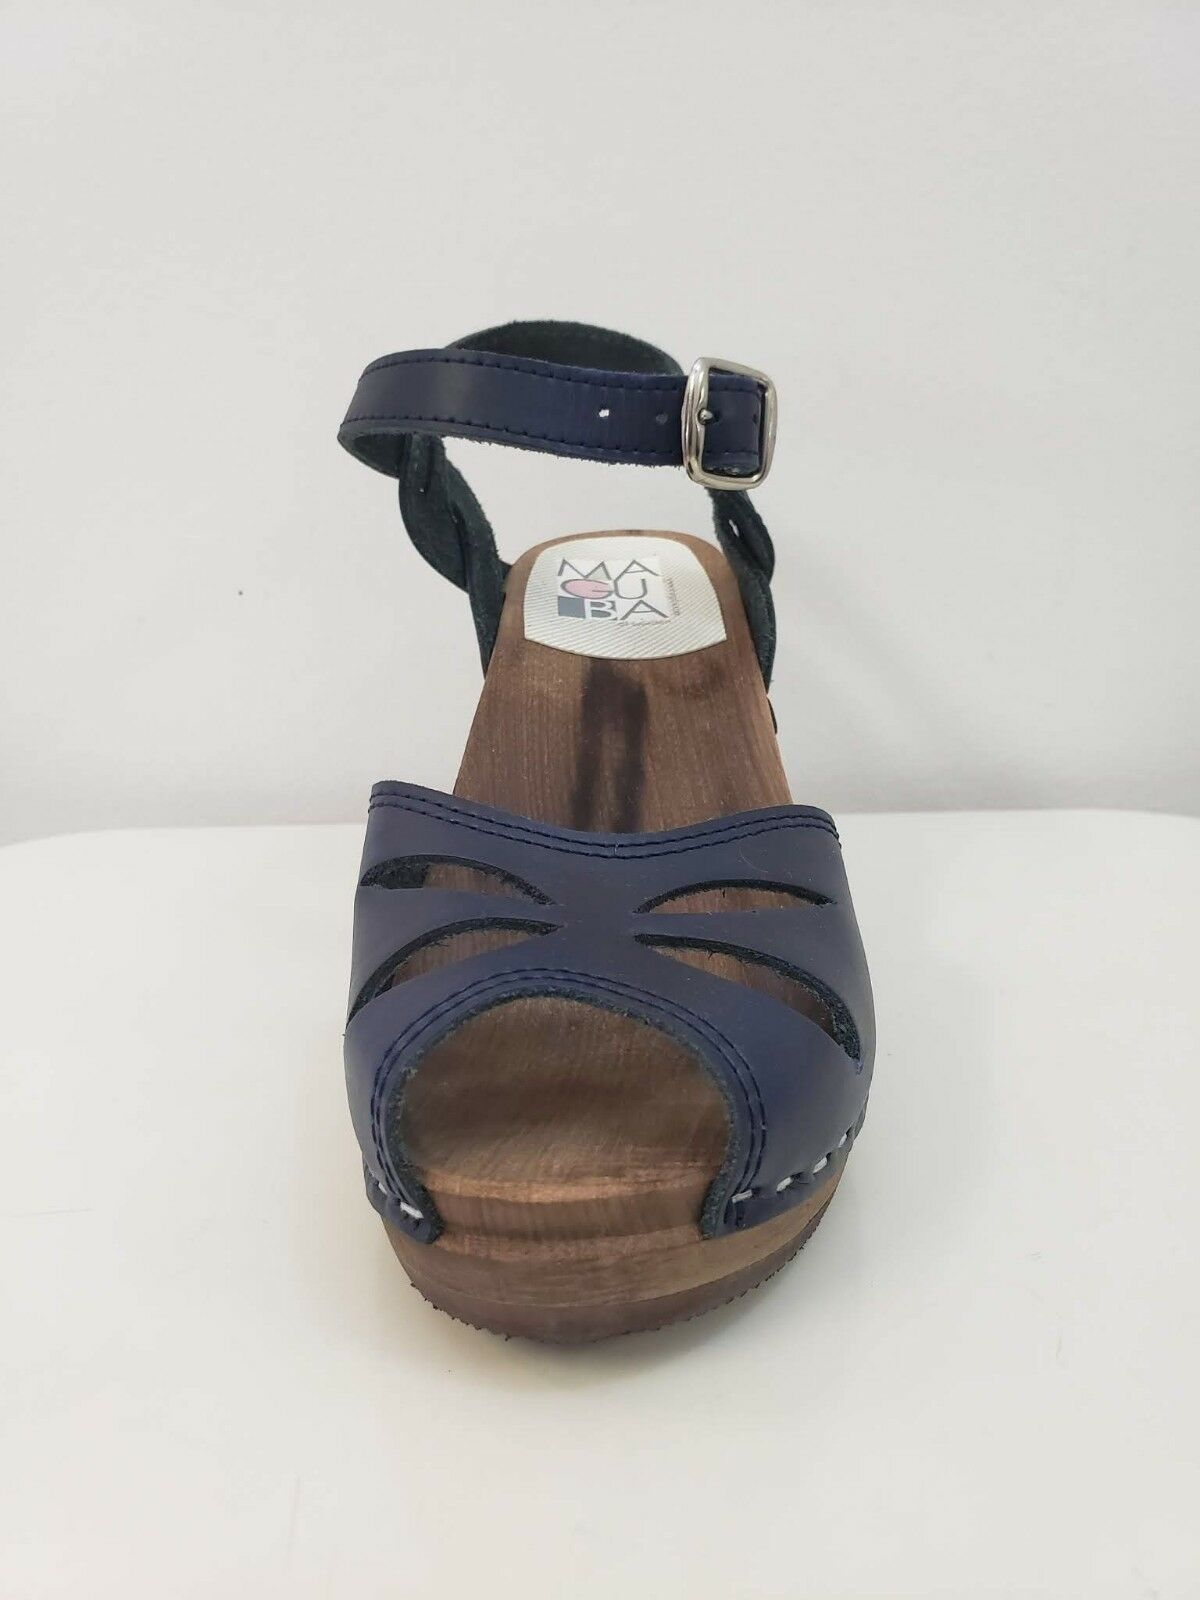 Maguba Rio Leather Open Toe Sandal with Natural Wood Heel NAVY Größe 38